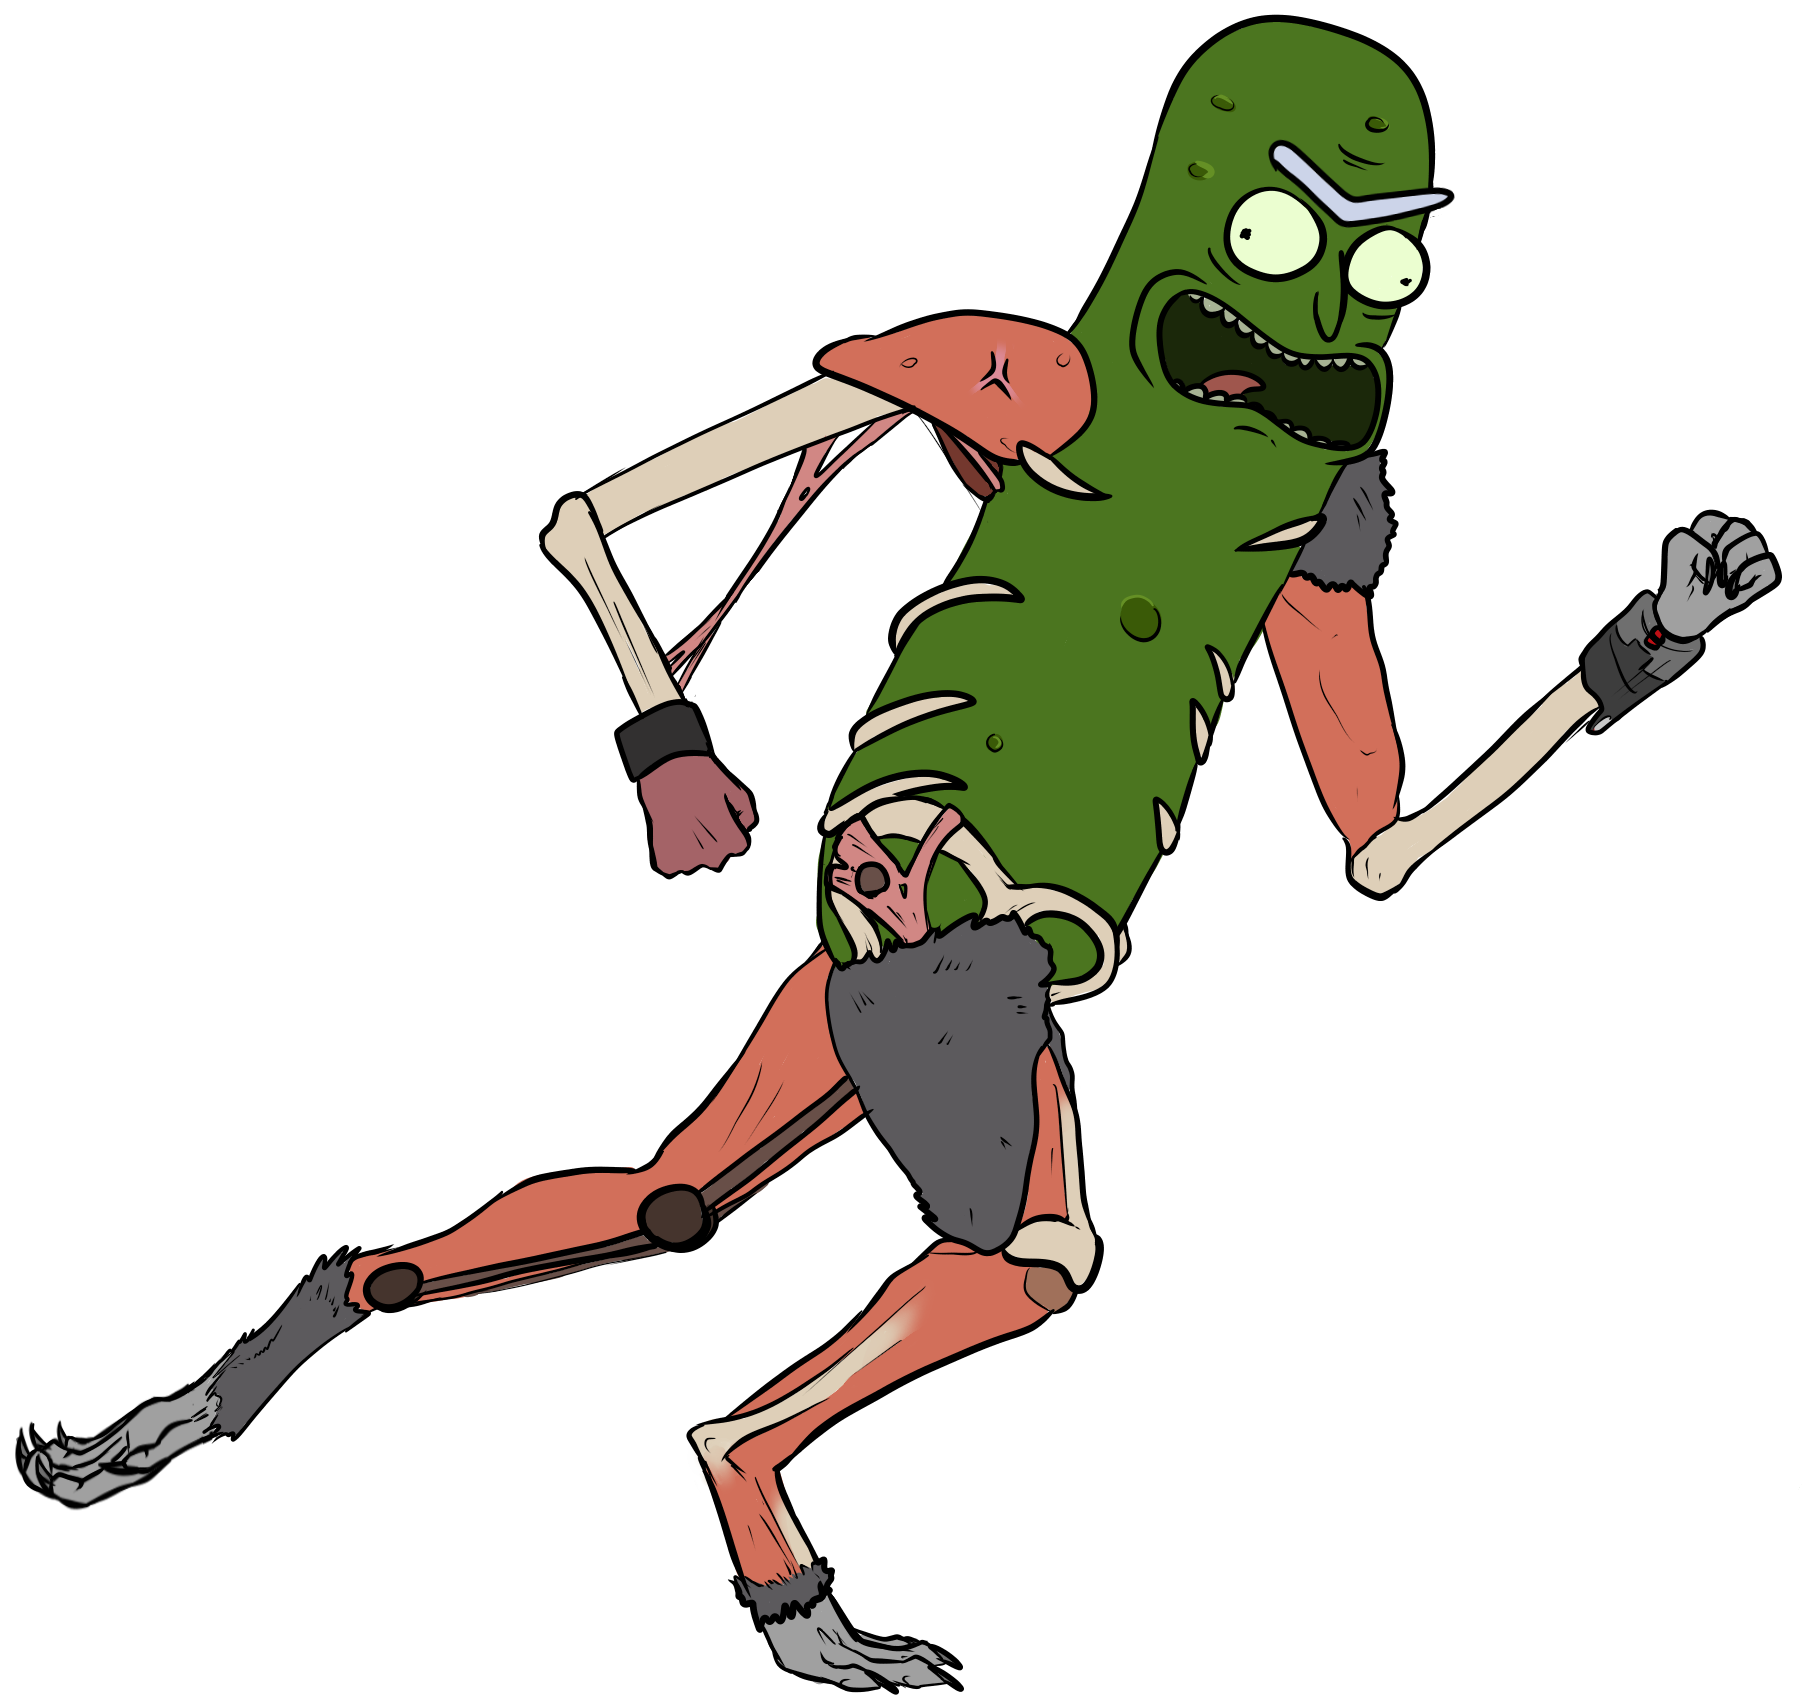 Pickle Rick Png - Pickle Rick In Rat Suit Clipart - Full ...